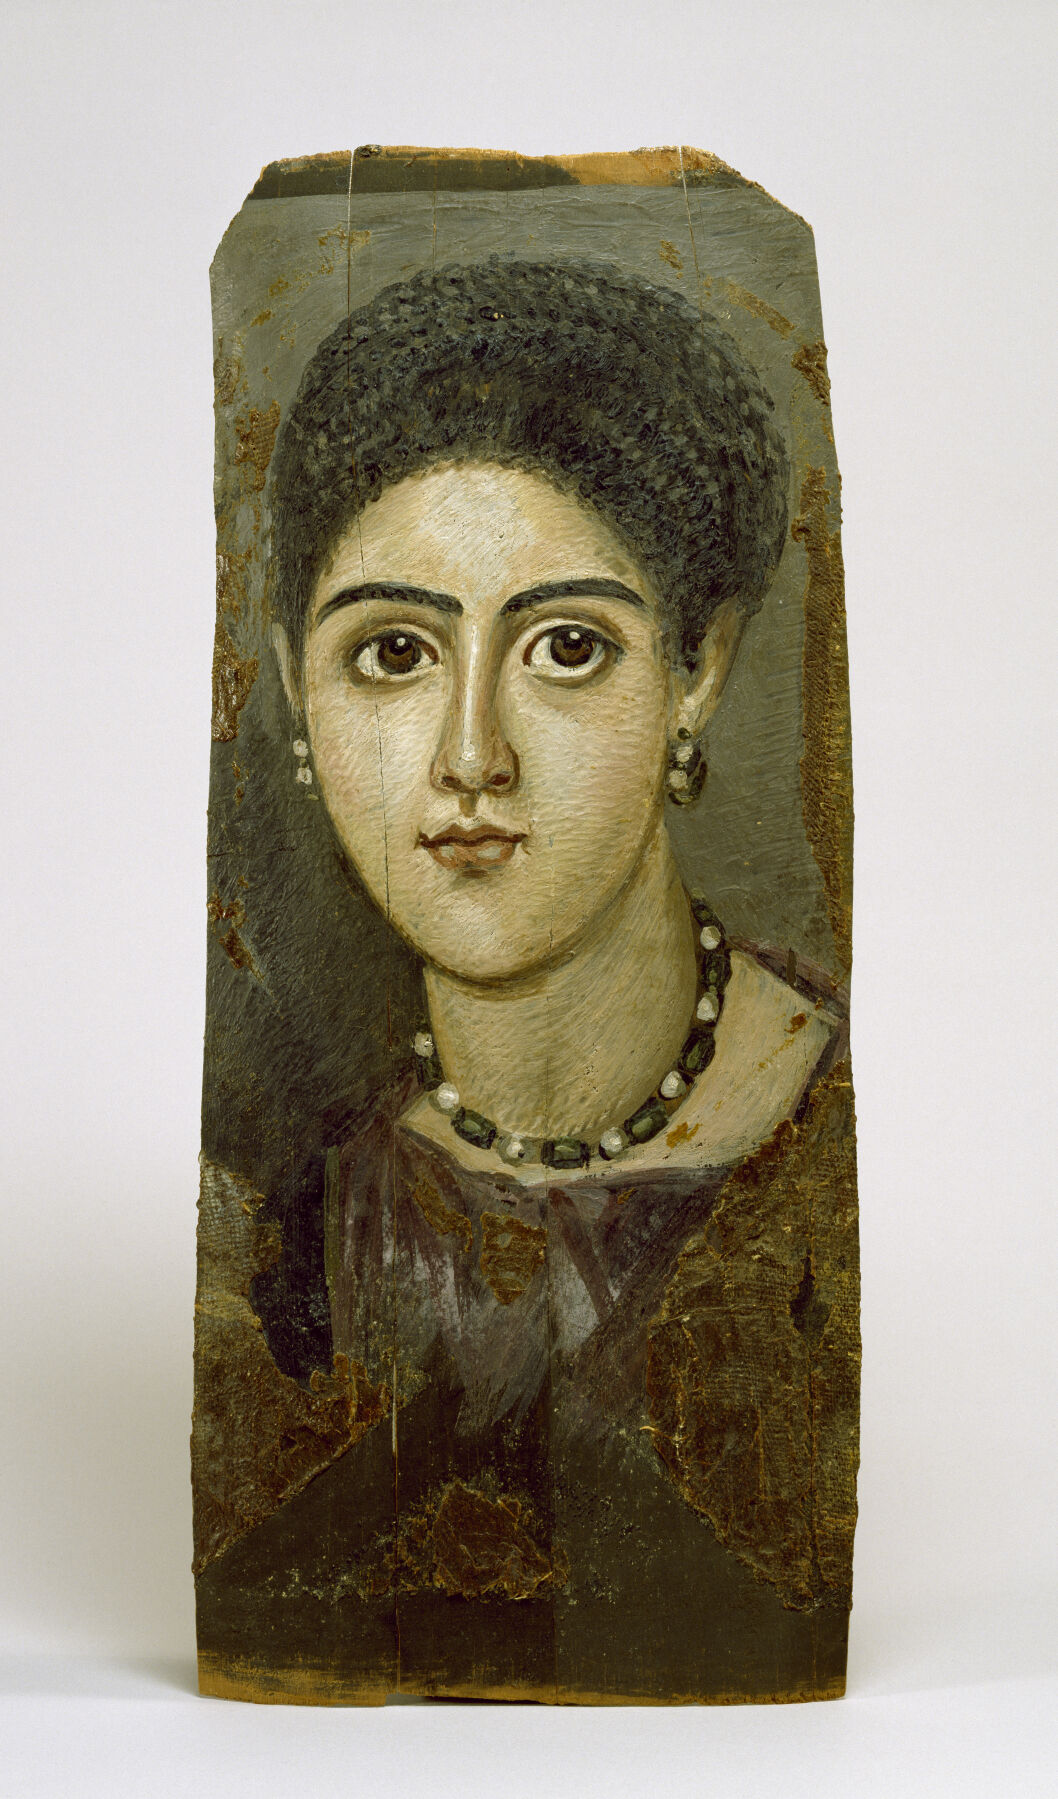 Female Portrait Mask, 2nd century. Image via Wikimedia Commons courtesy of the Walters Art Museum.